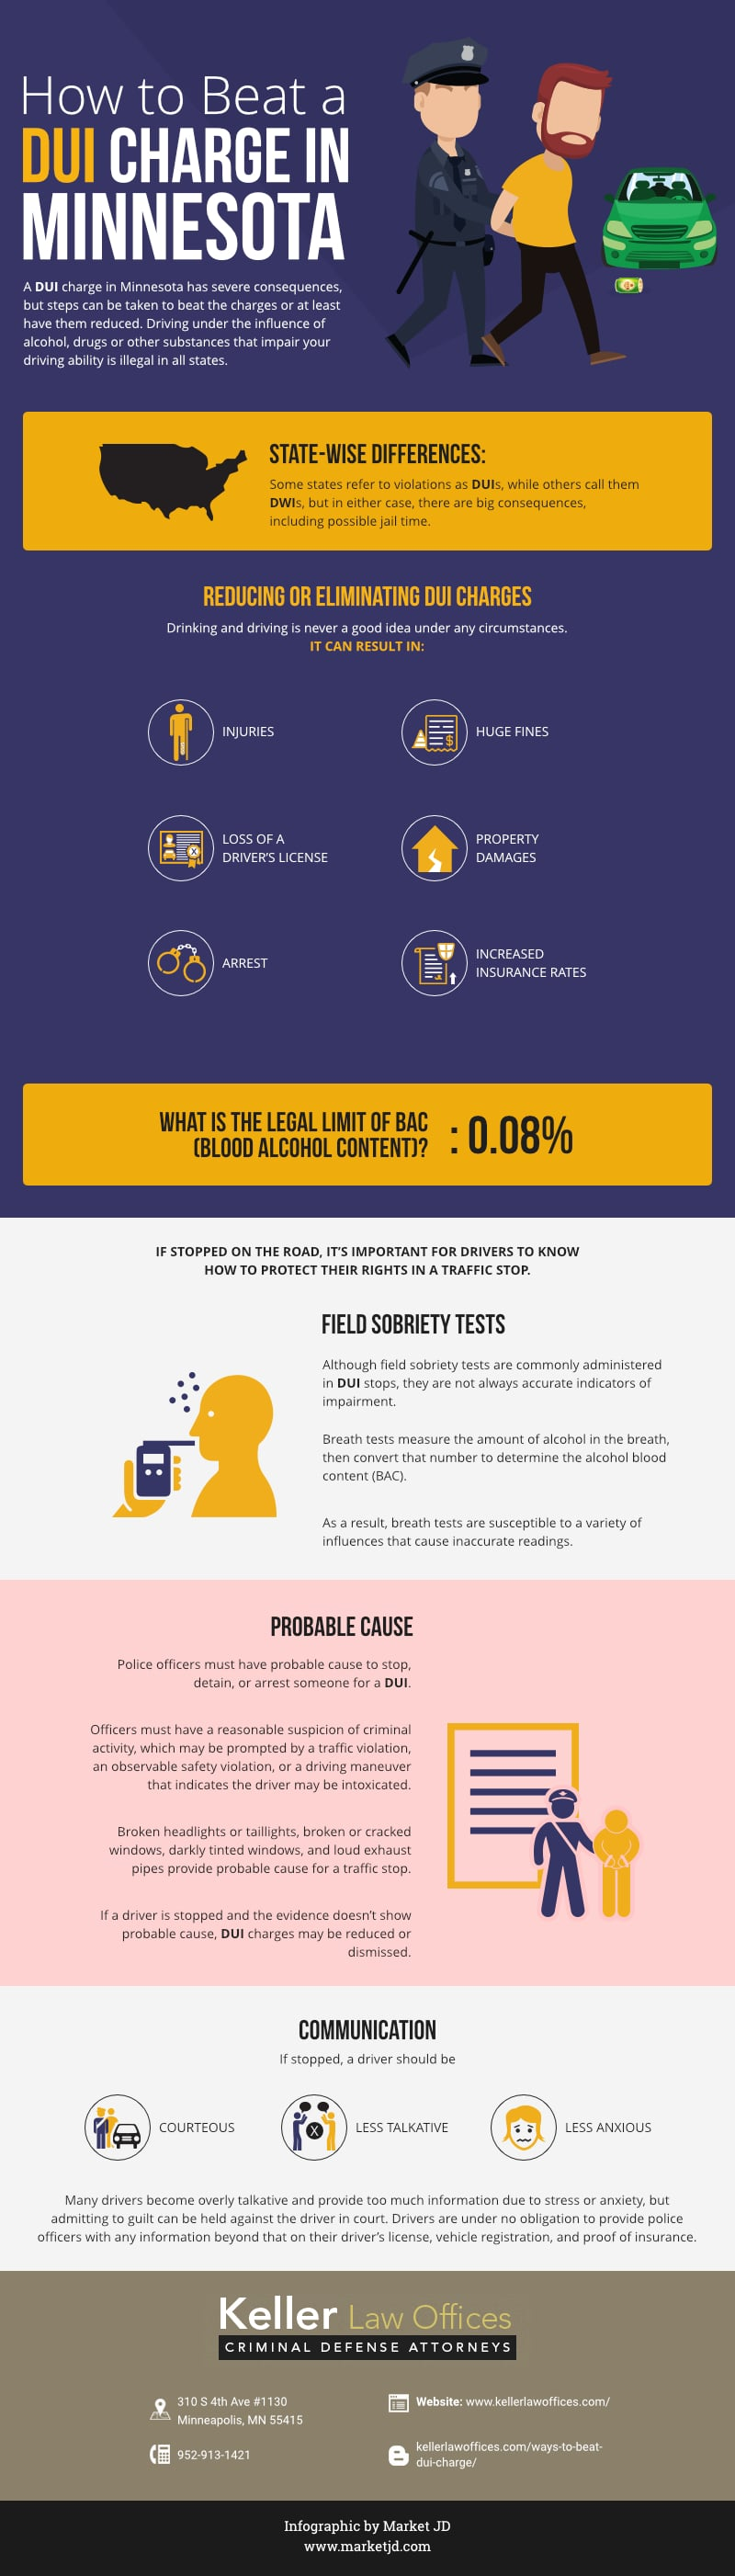 infographic-How to Beat a DUI Charge in Minnesota